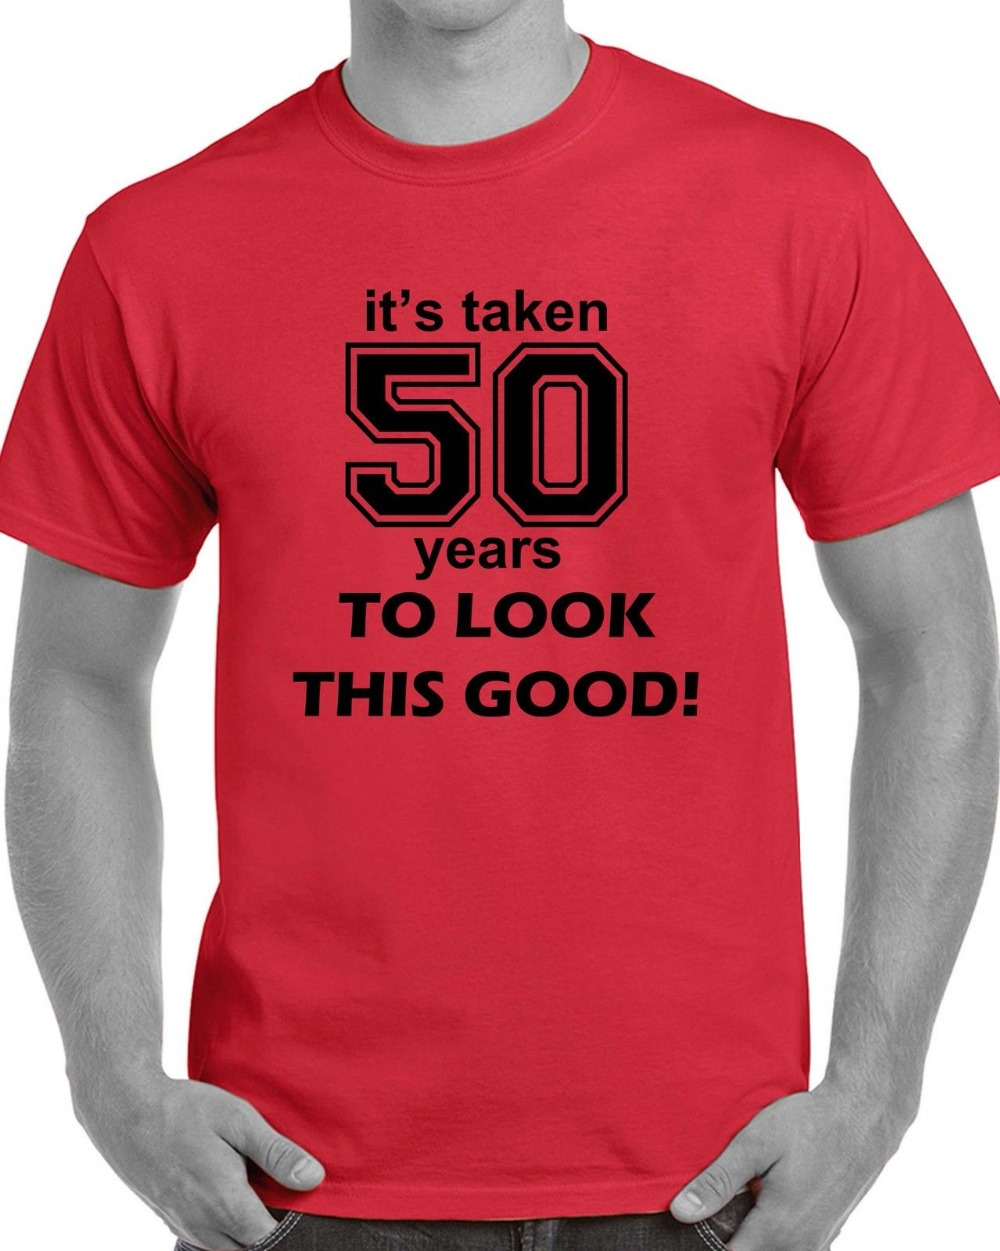 Tops Casuals Shirts Mens 50Th Birthday Party T Shirt Clothing Celebrations Gift Fiftyhip Hop In From On